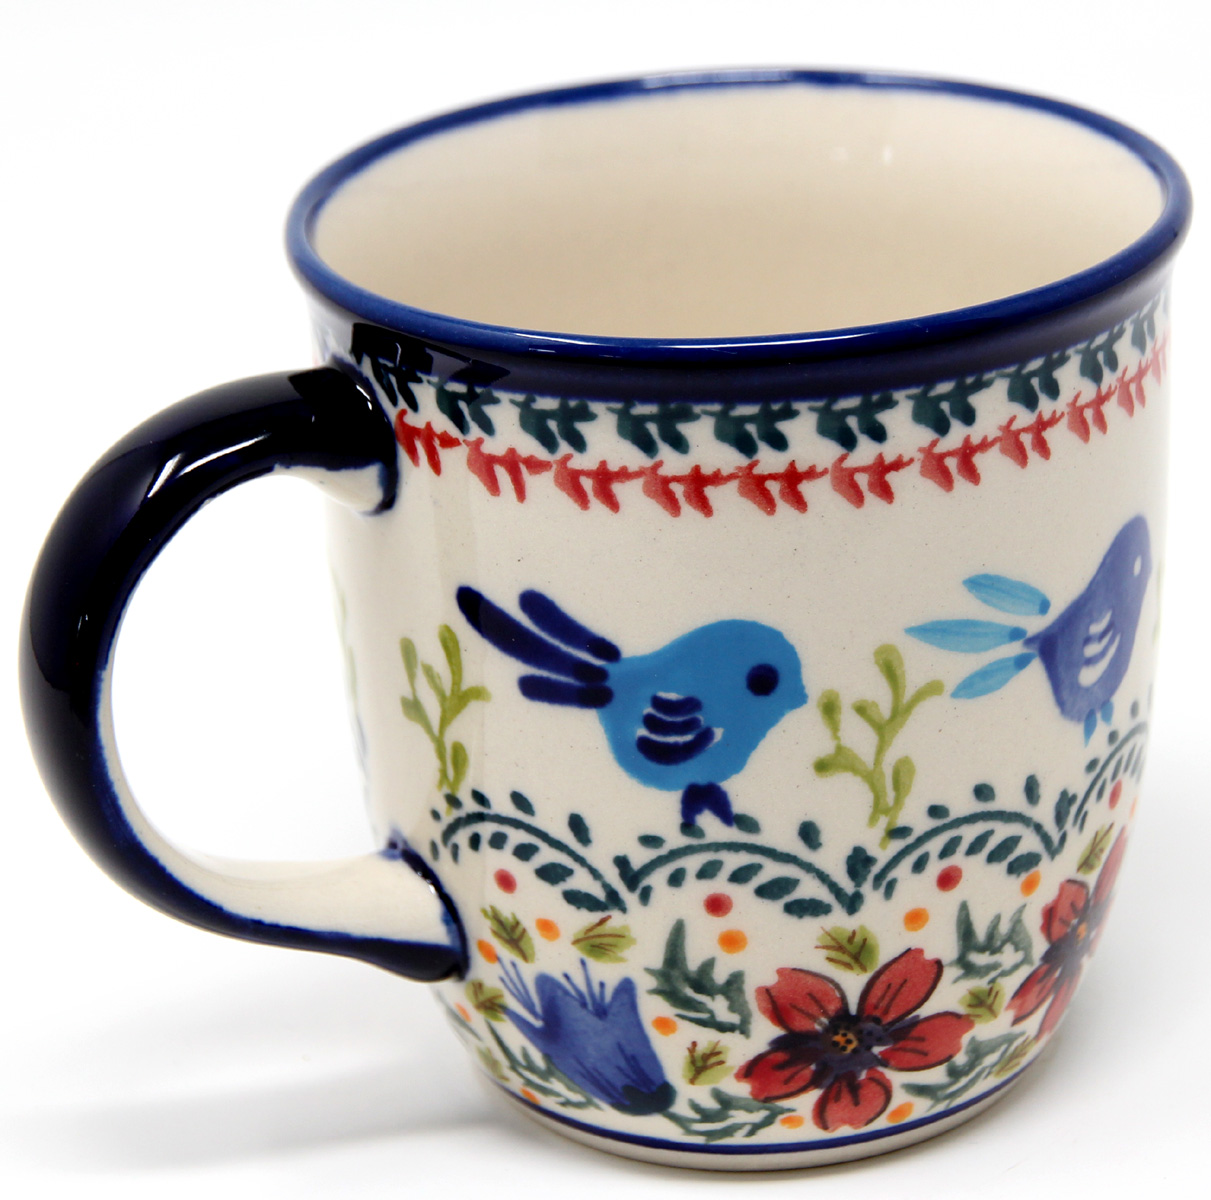 Polish Pottery Mug 12 Oz., Unikat Signature Design 214 Art